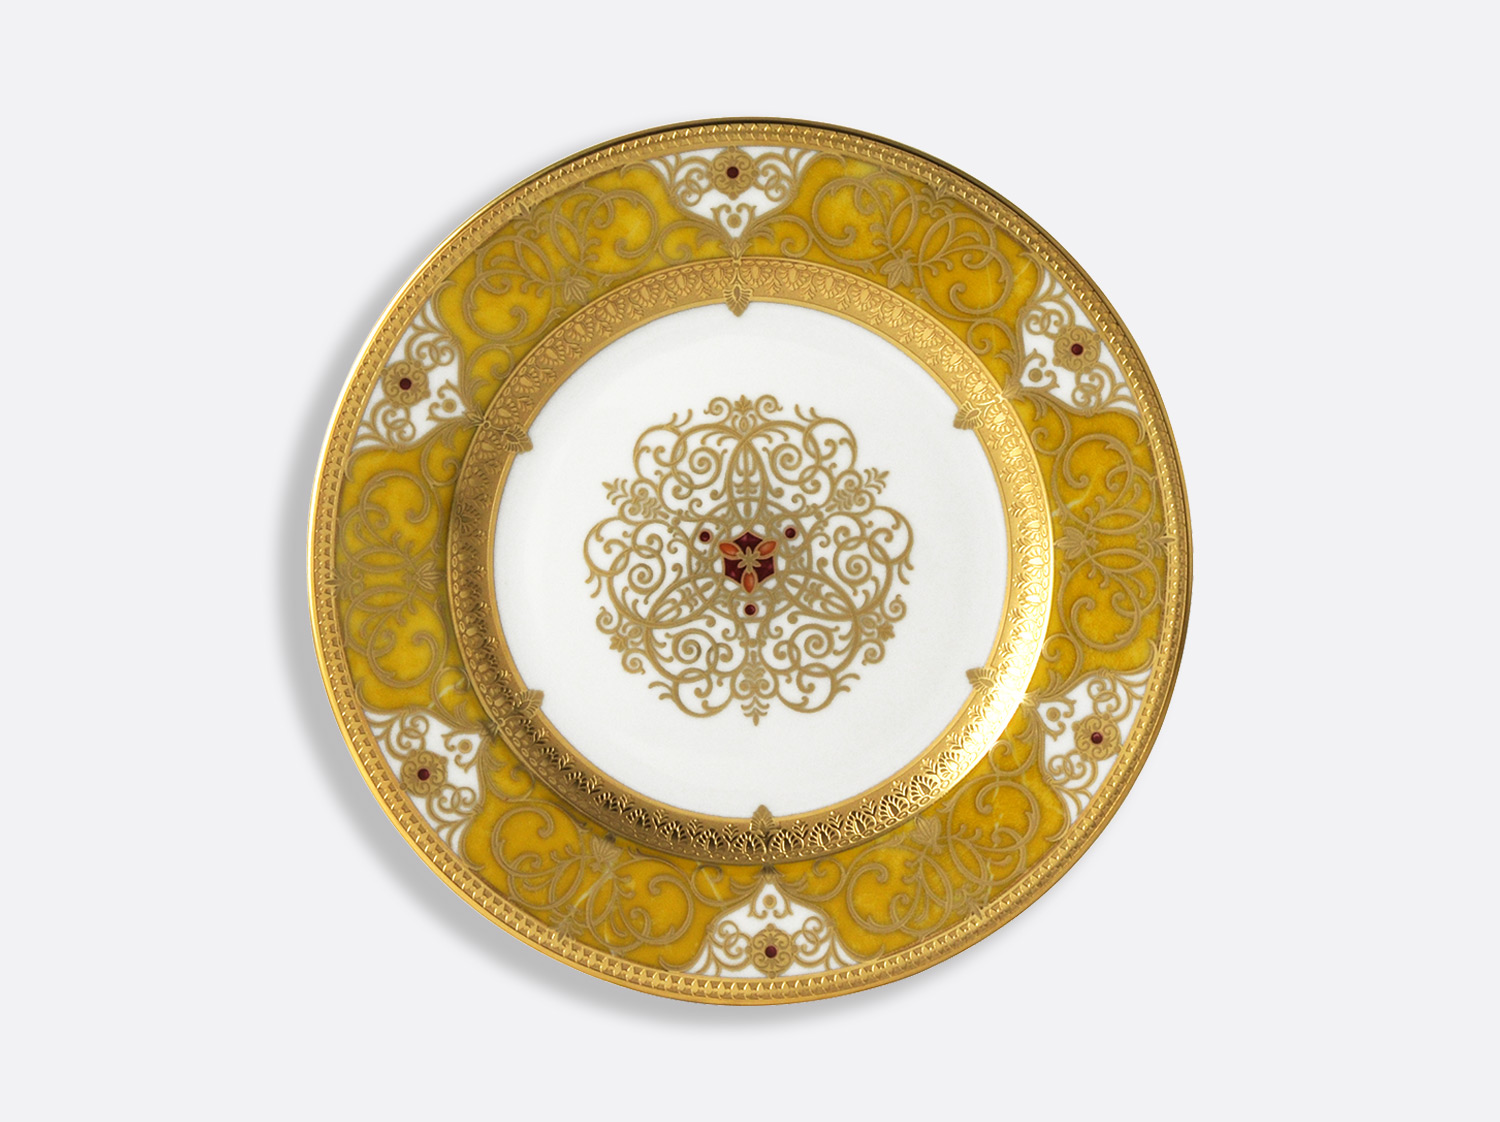 Assiette à dîner 26 cm en porcelaine de la collection splendid Bernardaud